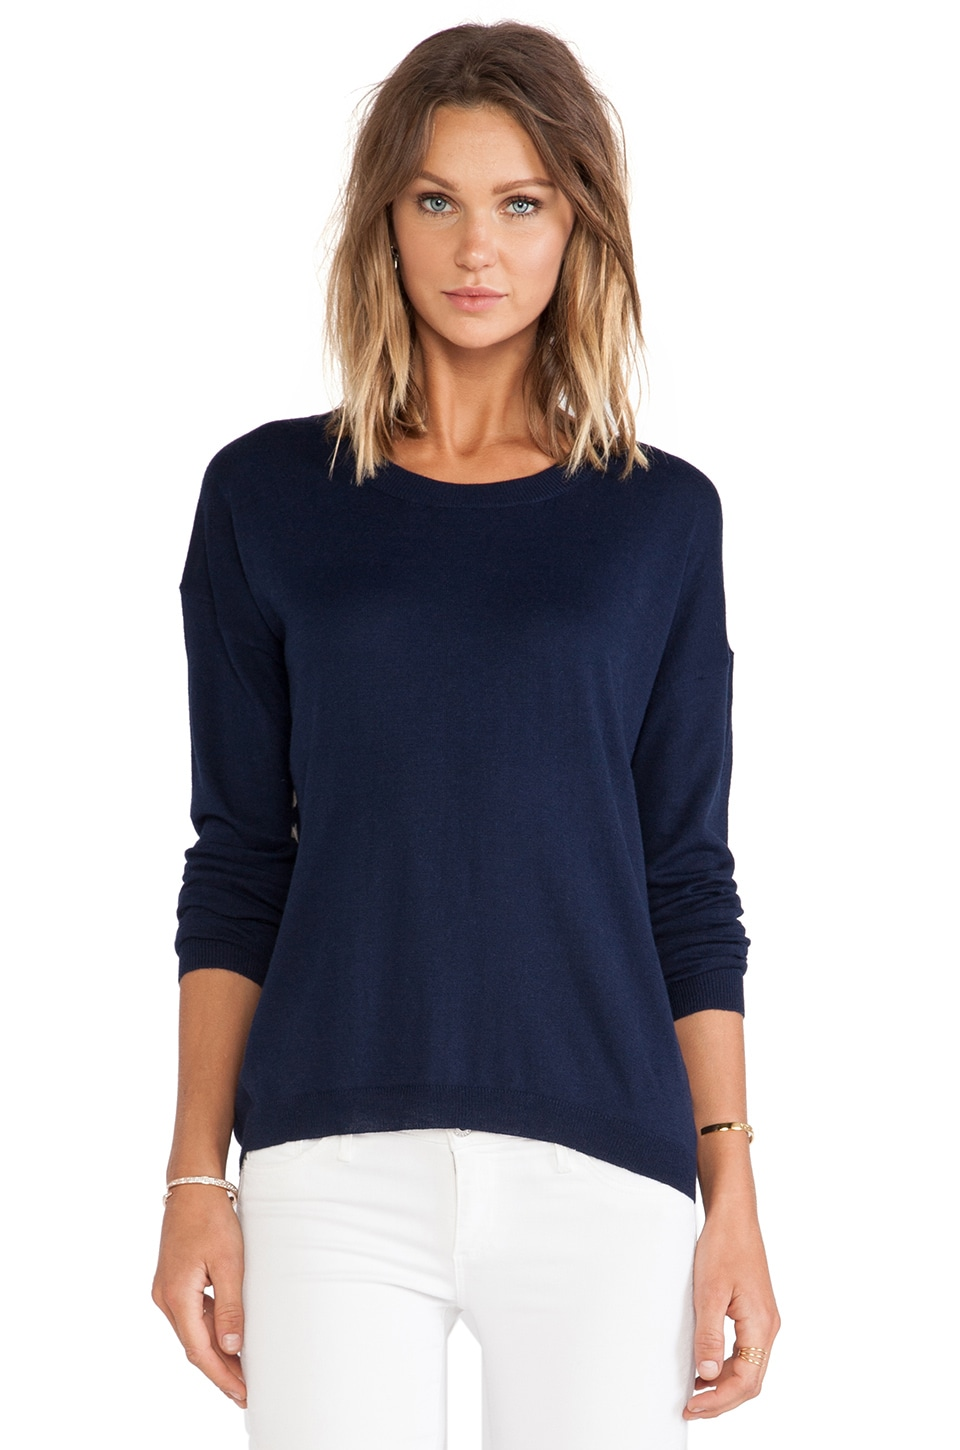 Feel the Piece Leni Sweater in Navy & Toffee